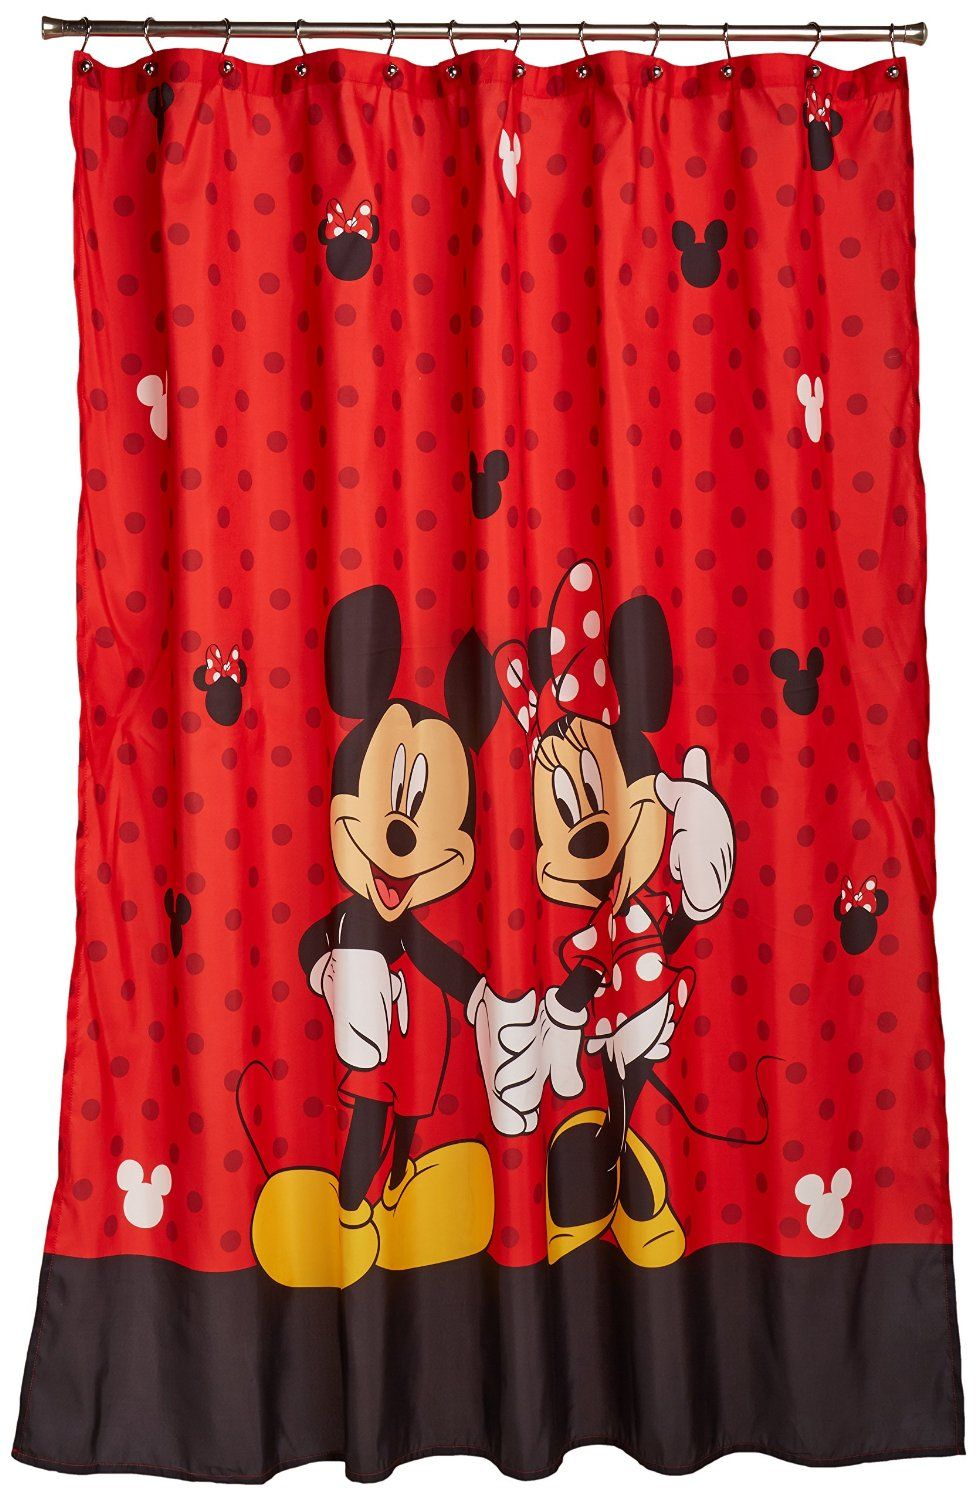 Amazon.com - Disney Mickey and Minnie Fabric Shower Curtain - | Kids ...